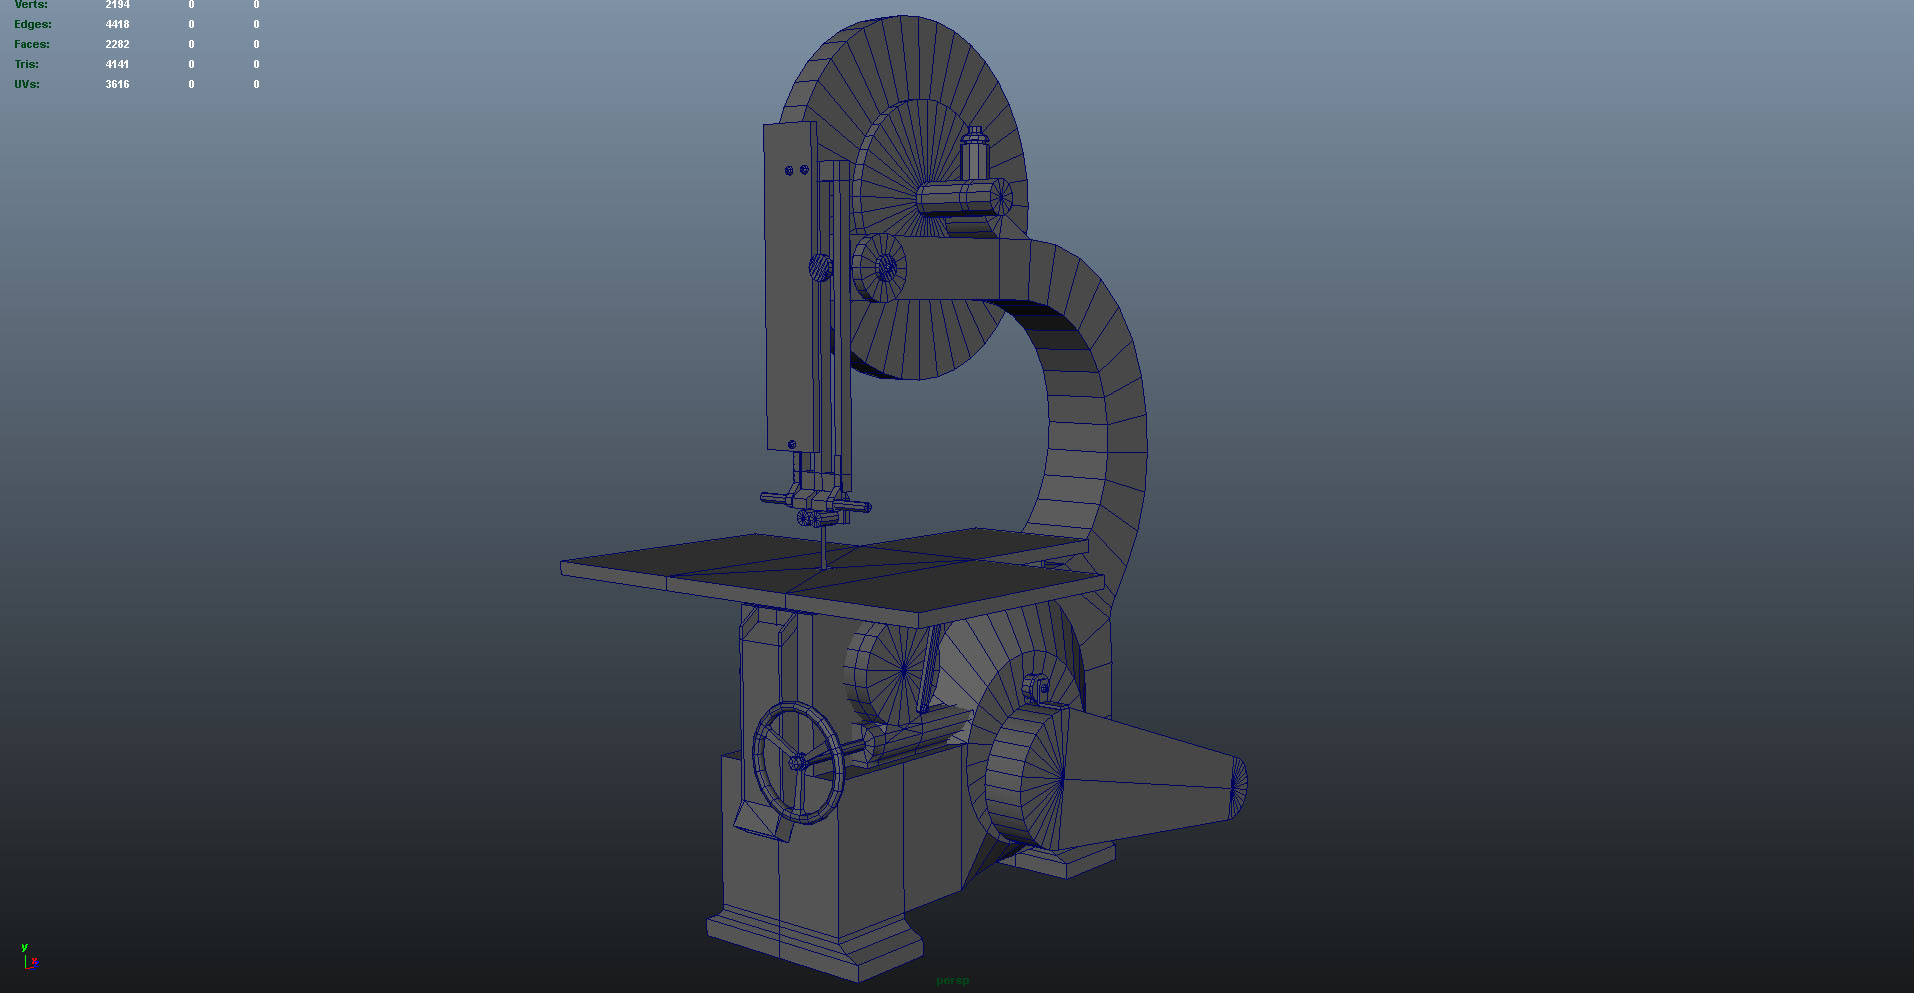 band saw - front